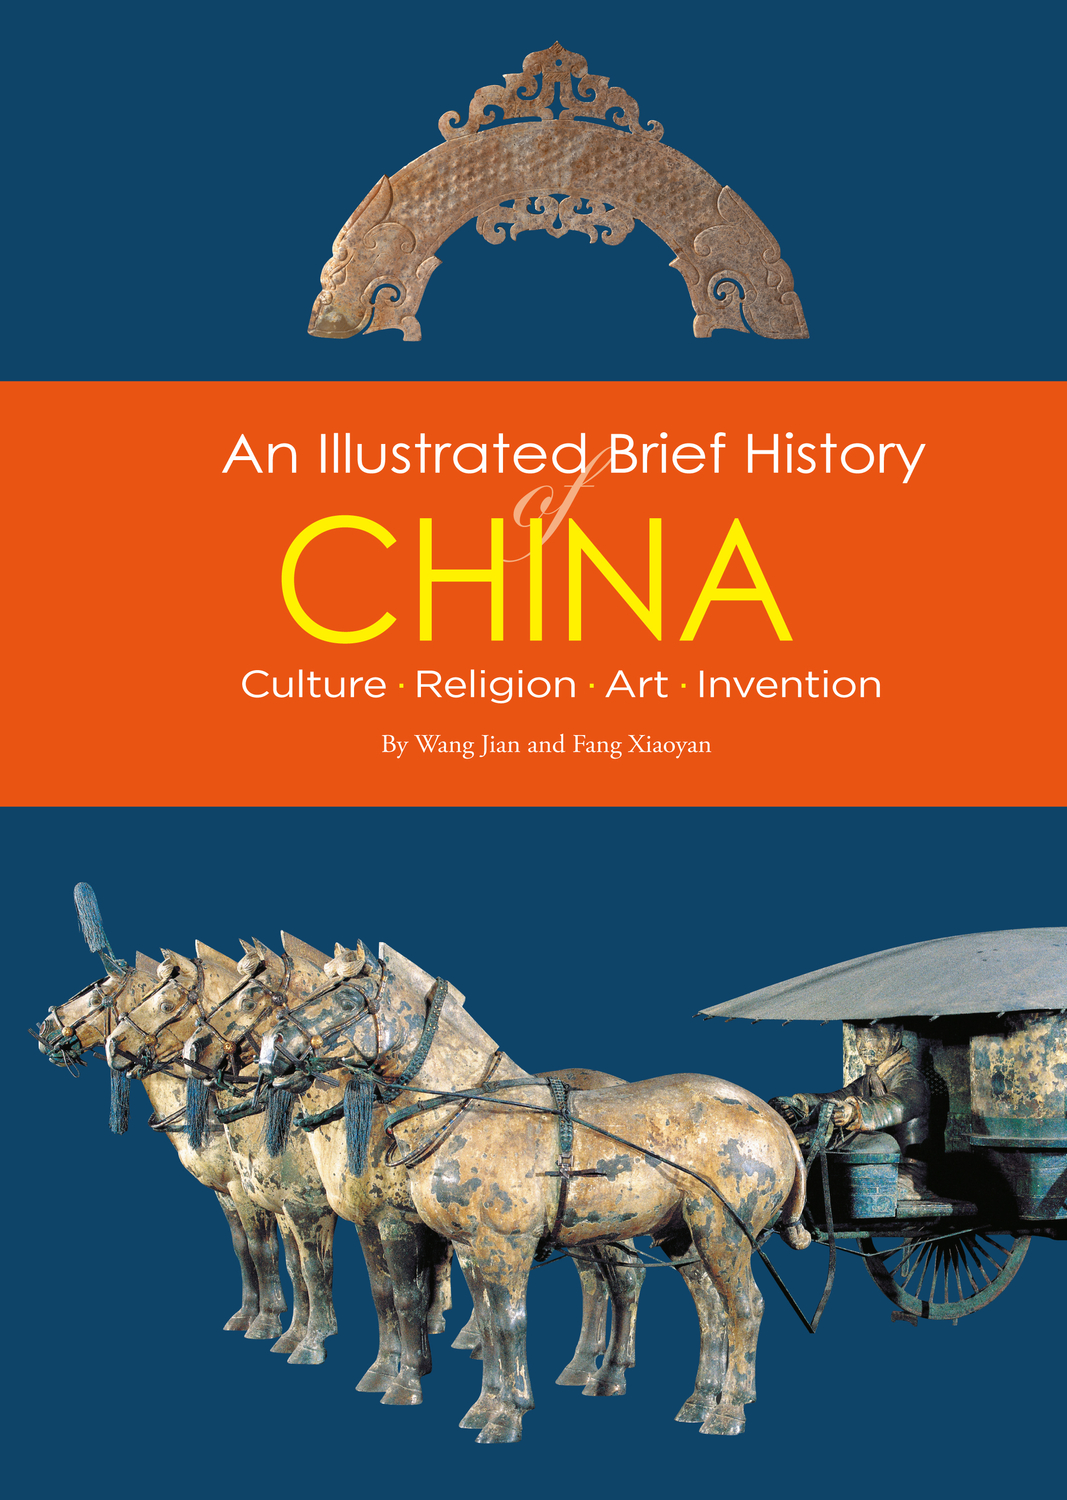 An Illustrated Brief History of China